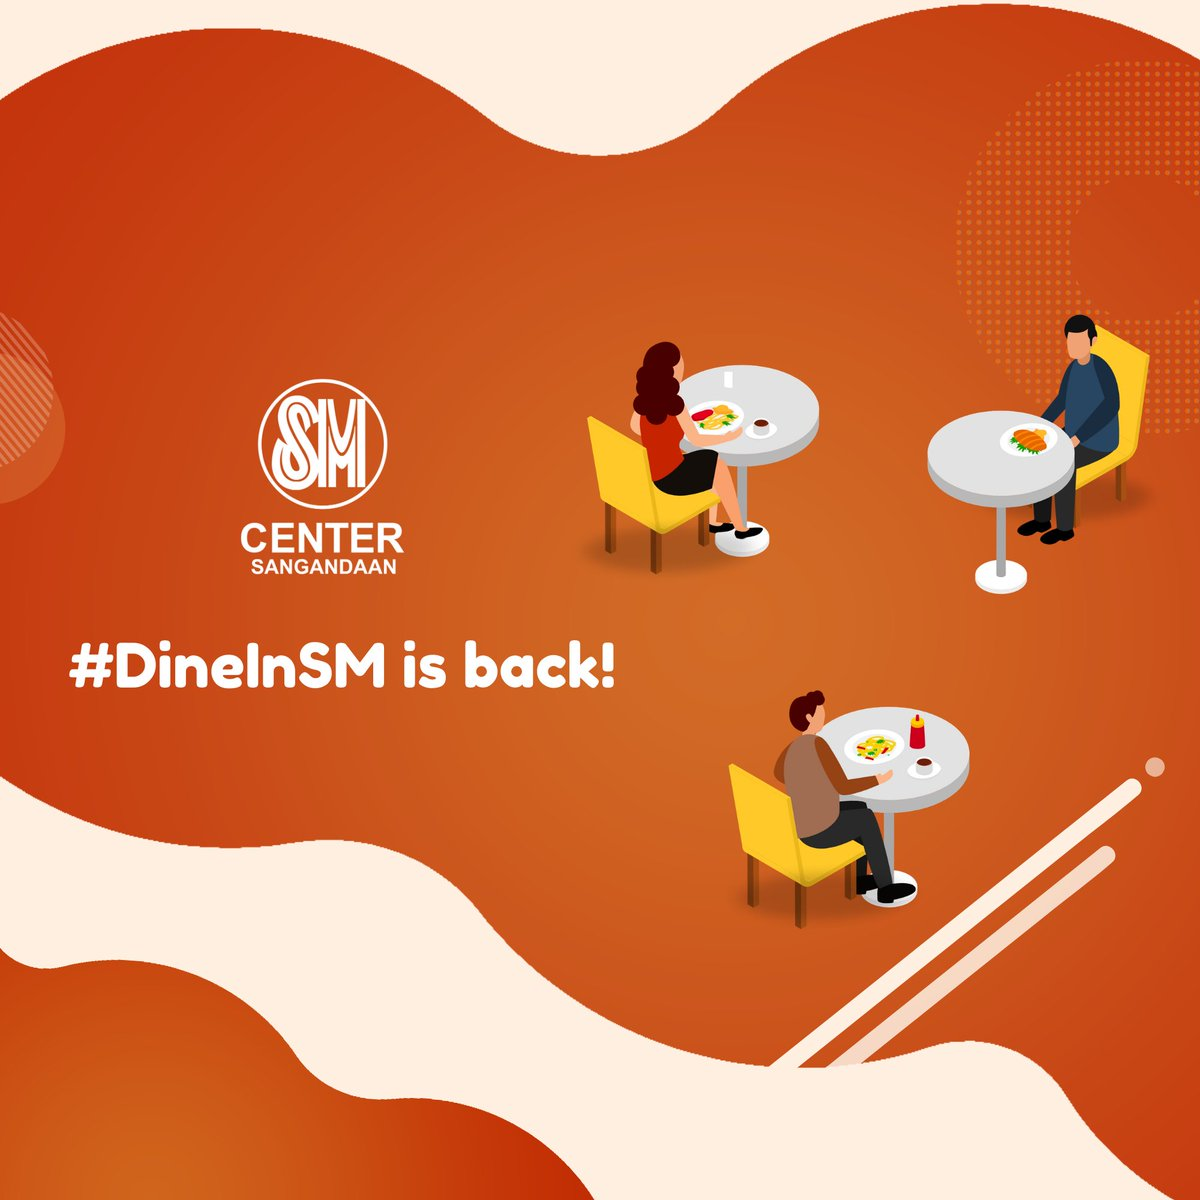 #DineInSM is back. Red heart Your dine-in favorites now open to serve you safely! #SafeMallingAtSM.  Click link for menu guide, store contact details and for table reservation.  https://t.co/0Y667trFnA https://t.co/zVSXEFviWG